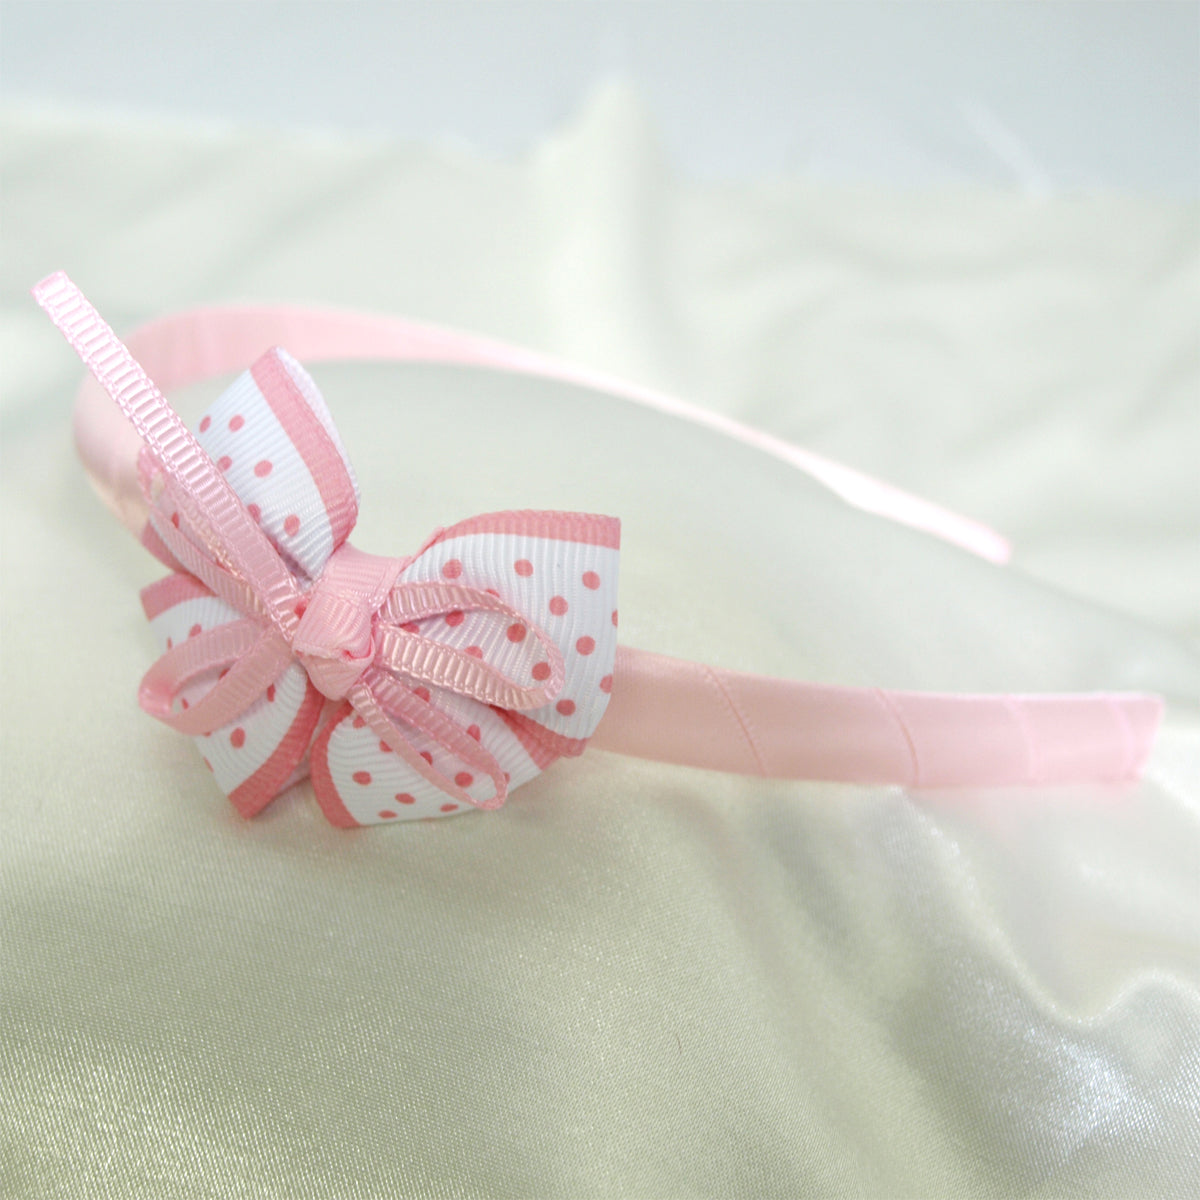 Wrapables Polka Dot Bow with Ribbons Headband for Girls